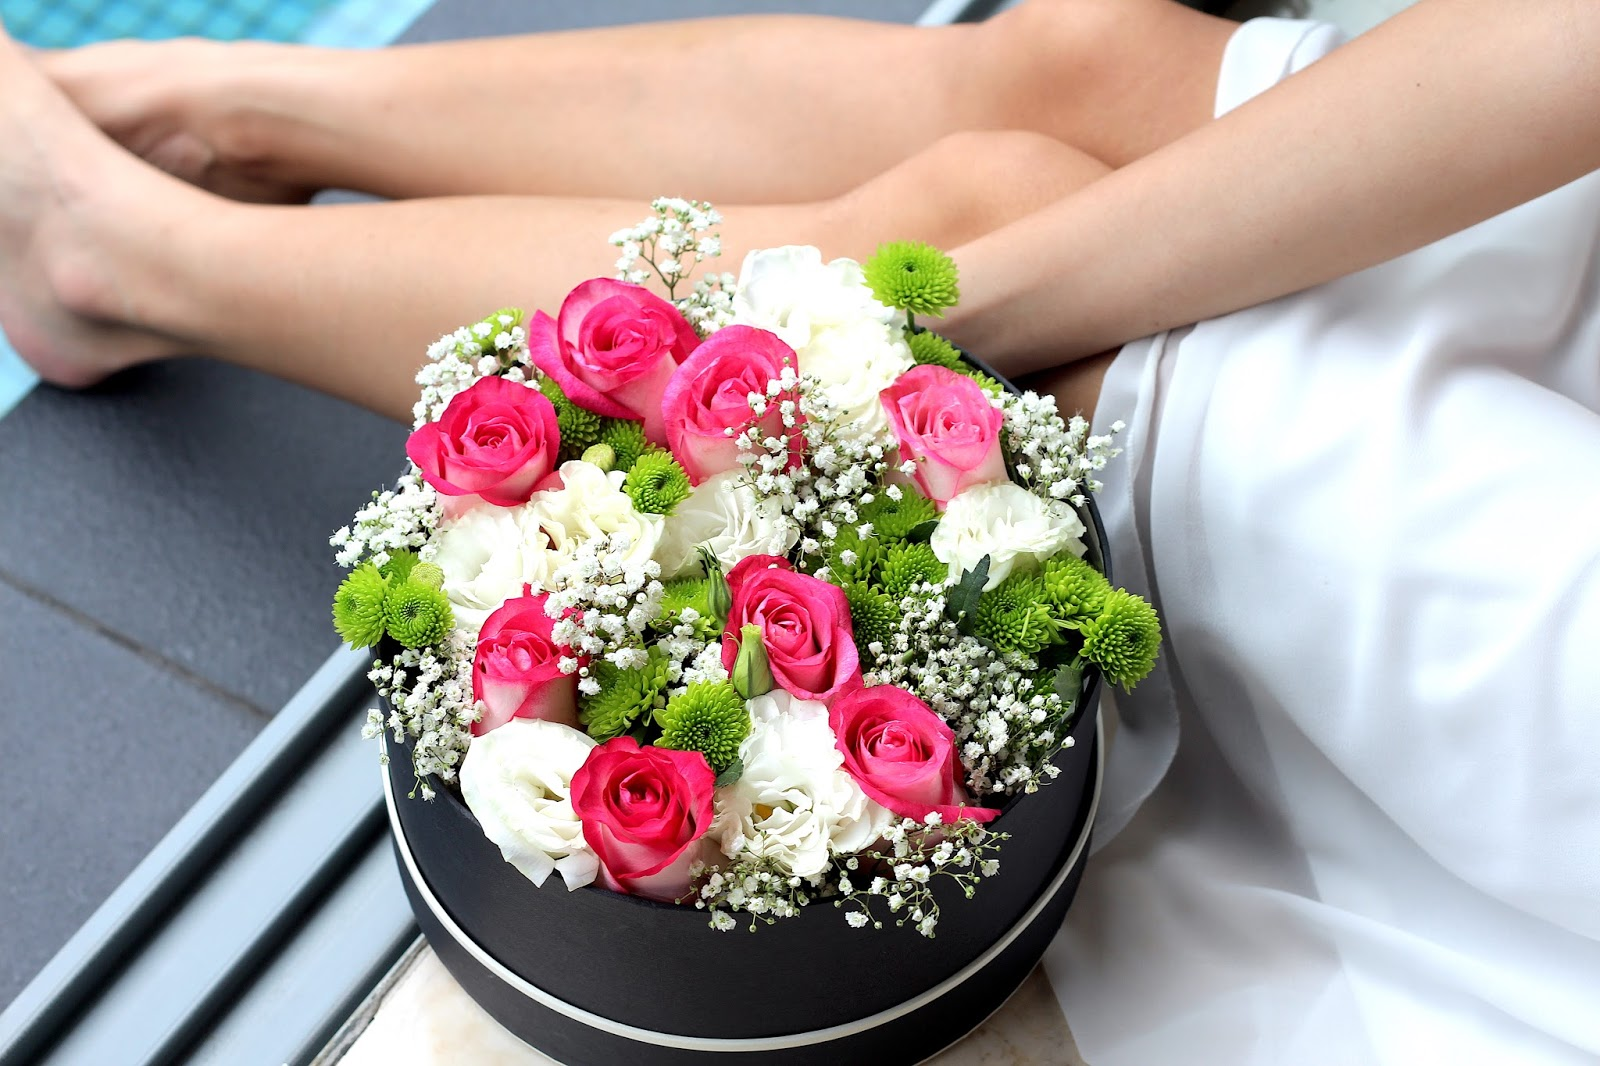 Floral garage cheapest florist in singapore kaiting hearts other than specializing in sending fresh flowers floral garage also offers many products like gift hampers congratulatory flower stands izmirmasajfo